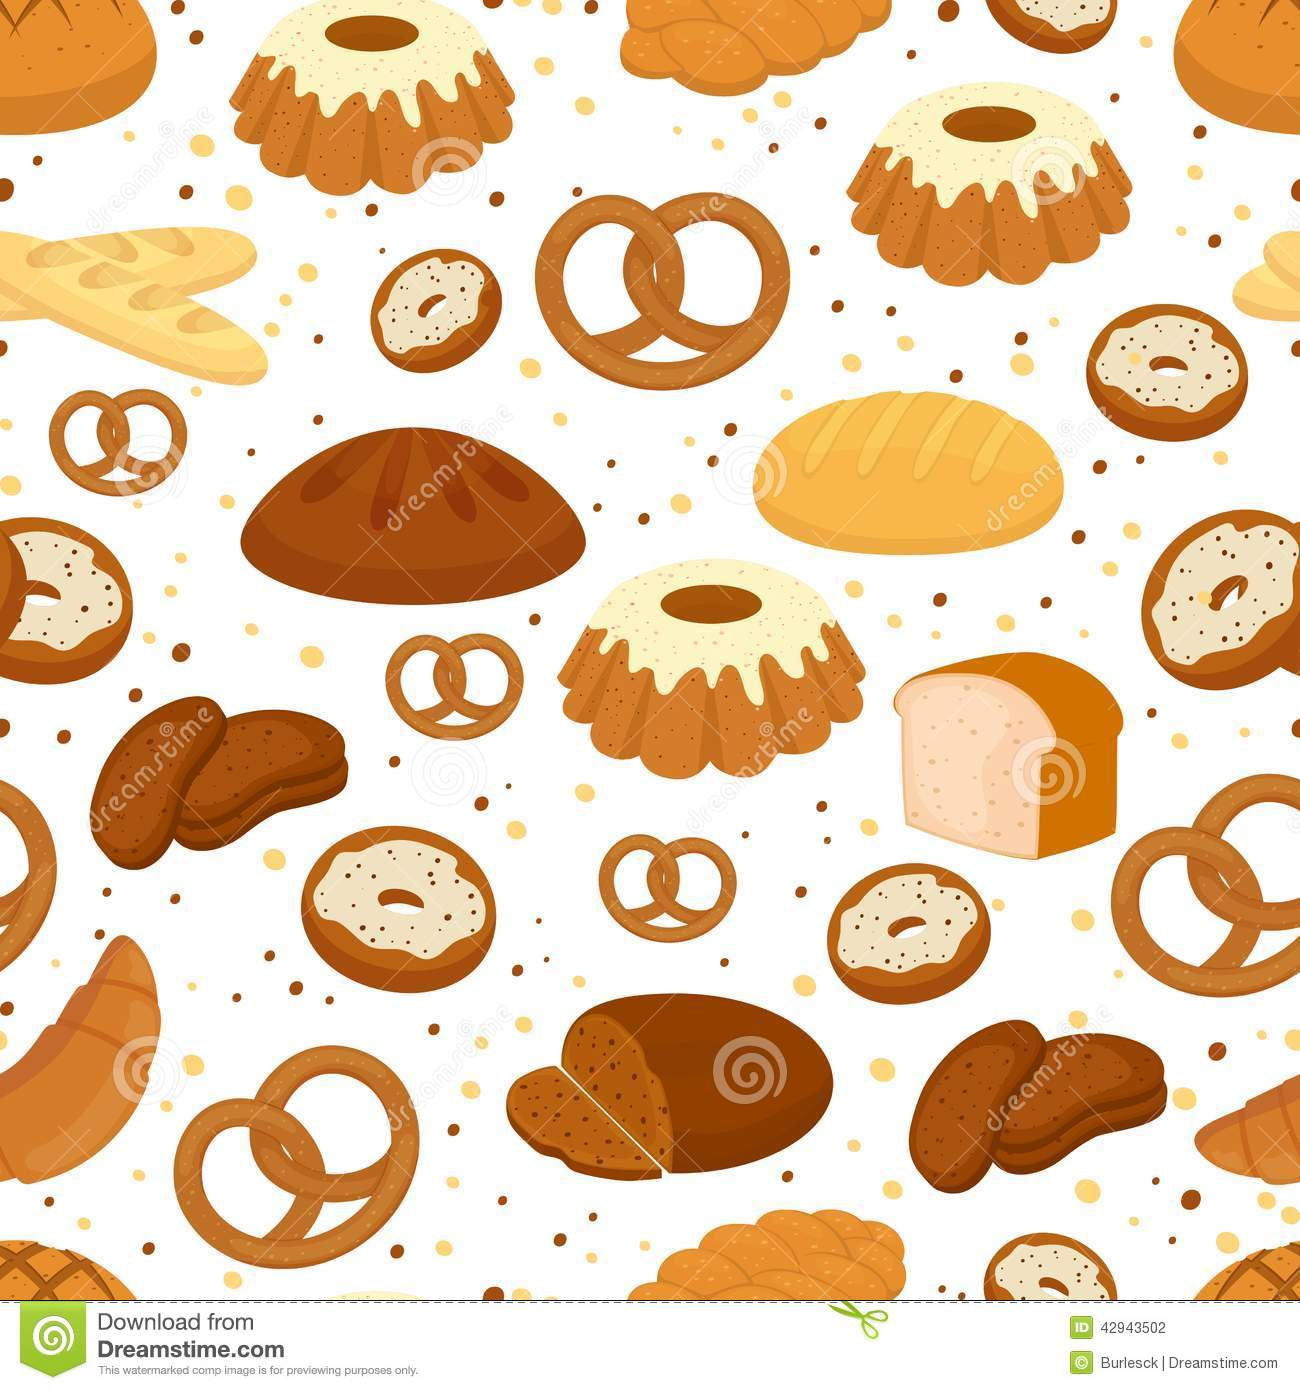 Bread And Baking Seamless Pattern Stock Vector Illustration Of